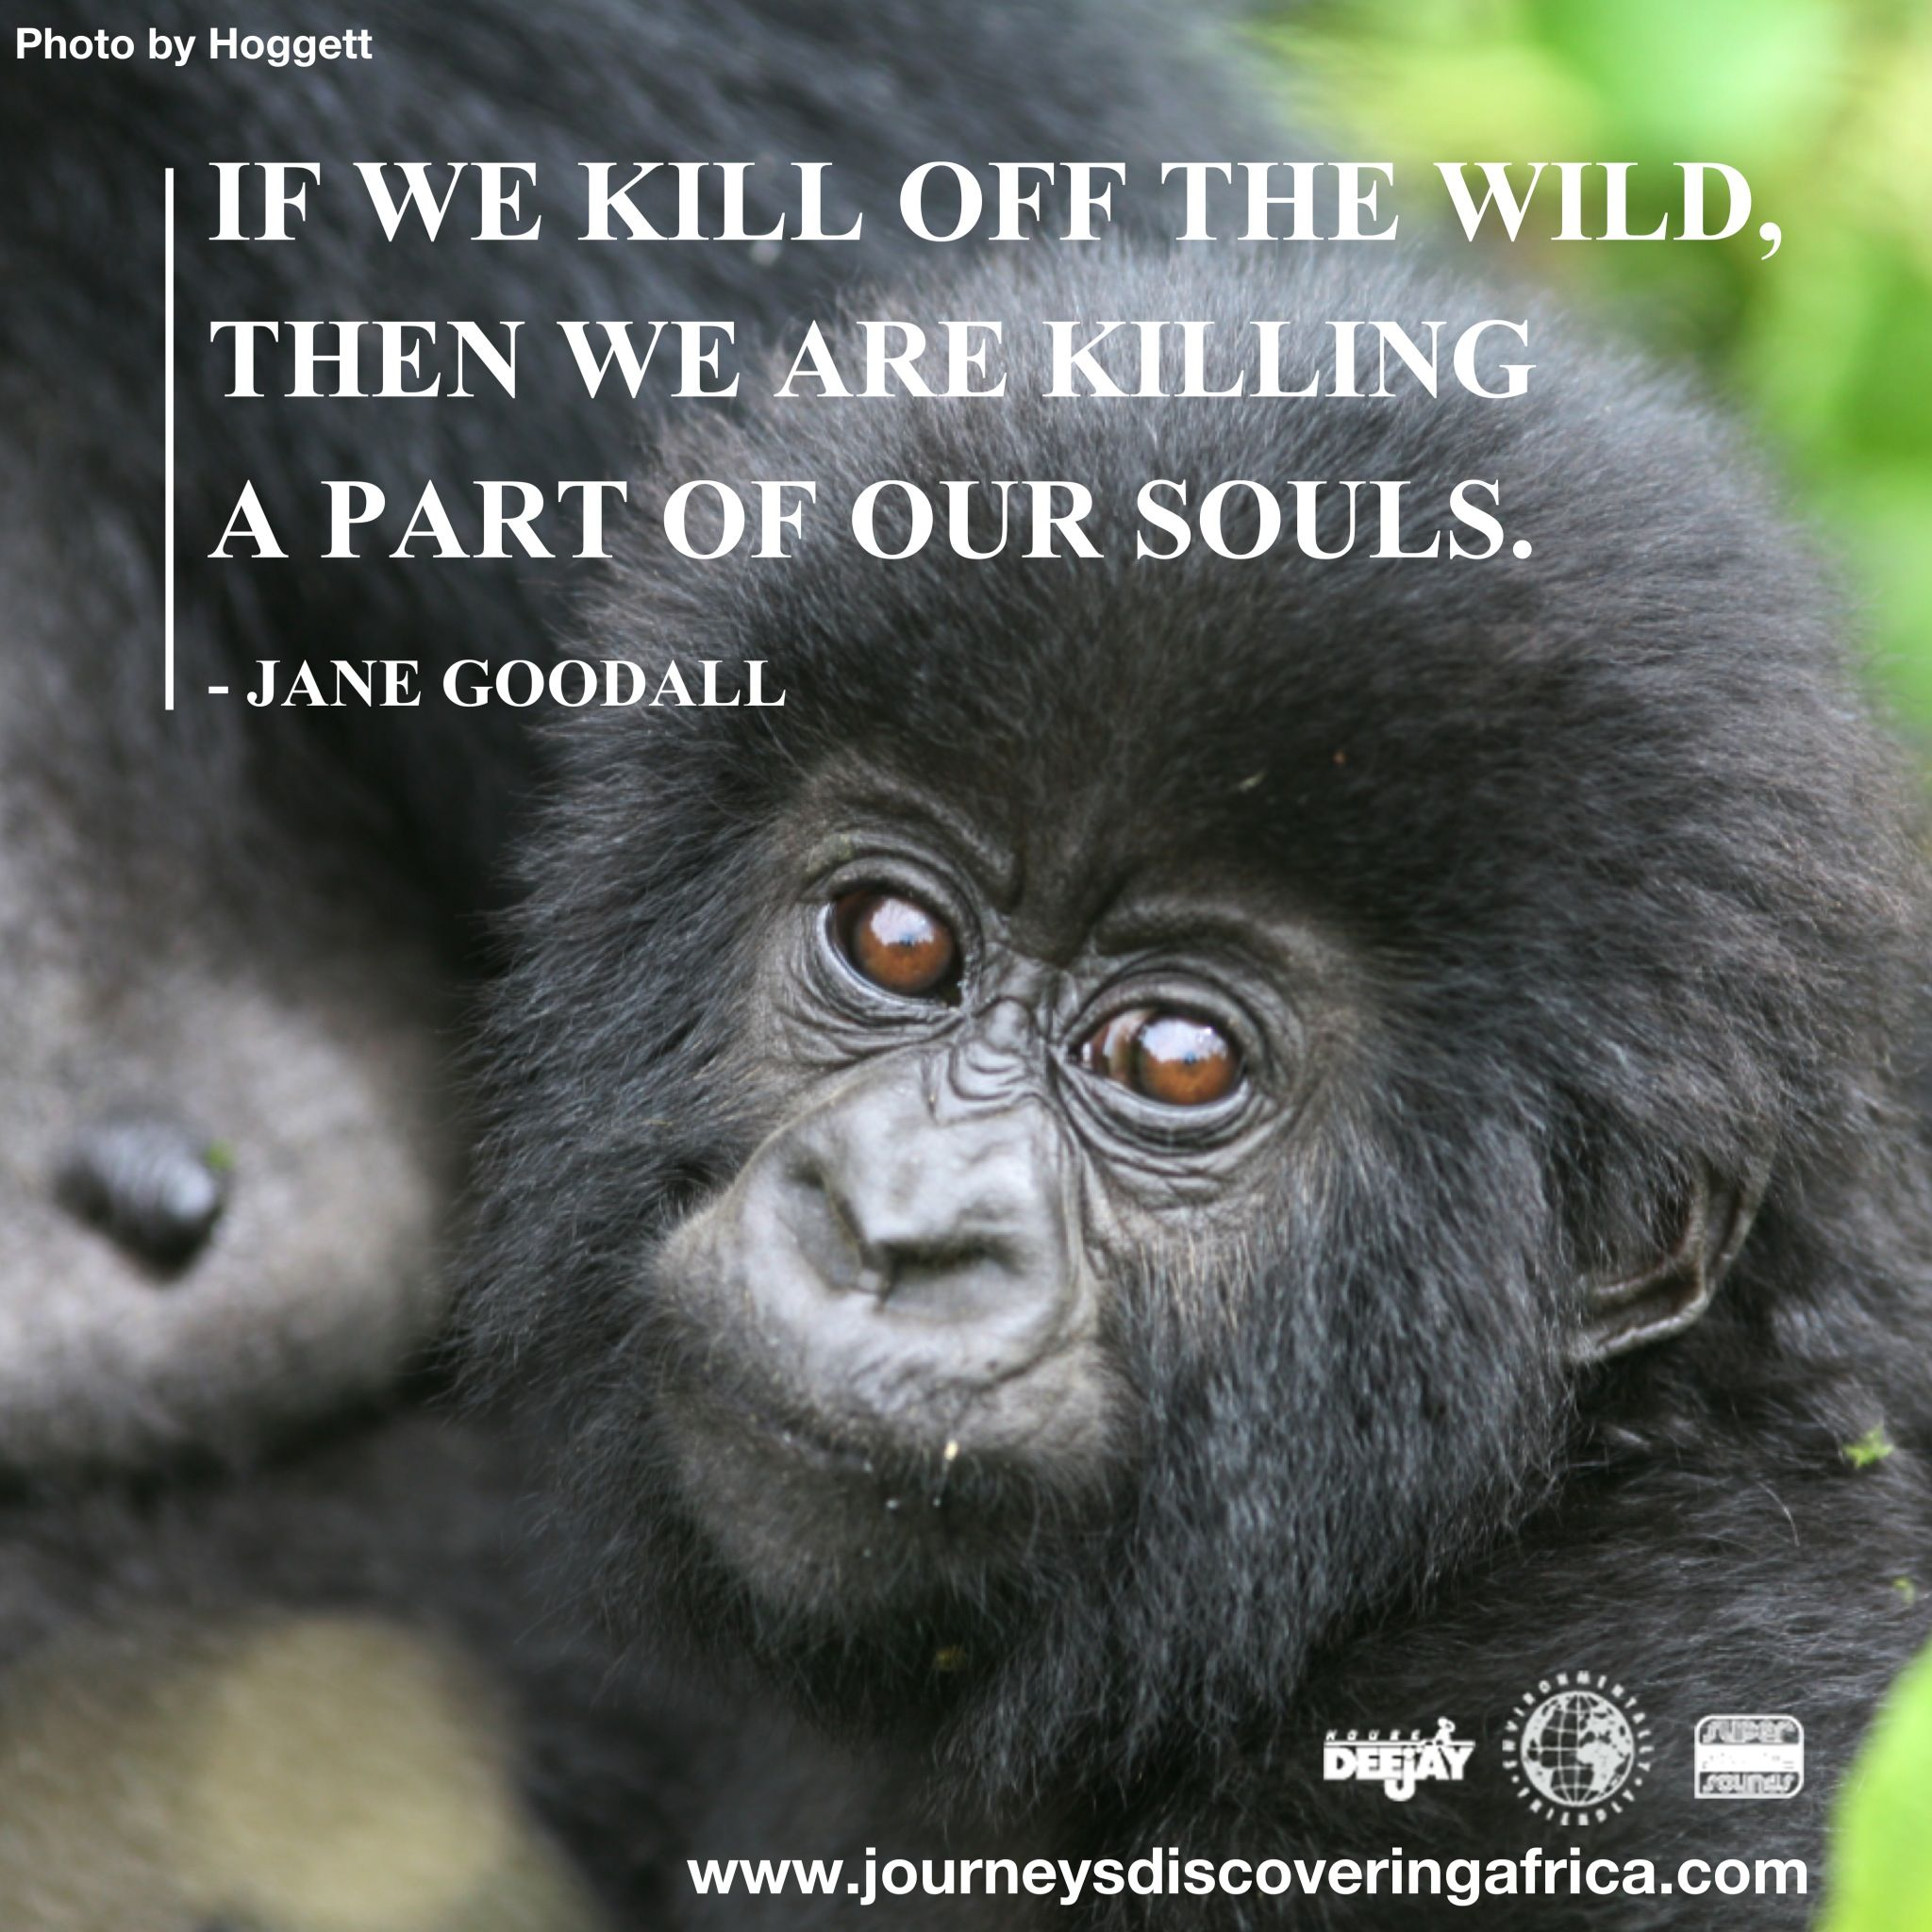 Wise words from the conservationist Jane Goodall. Photo